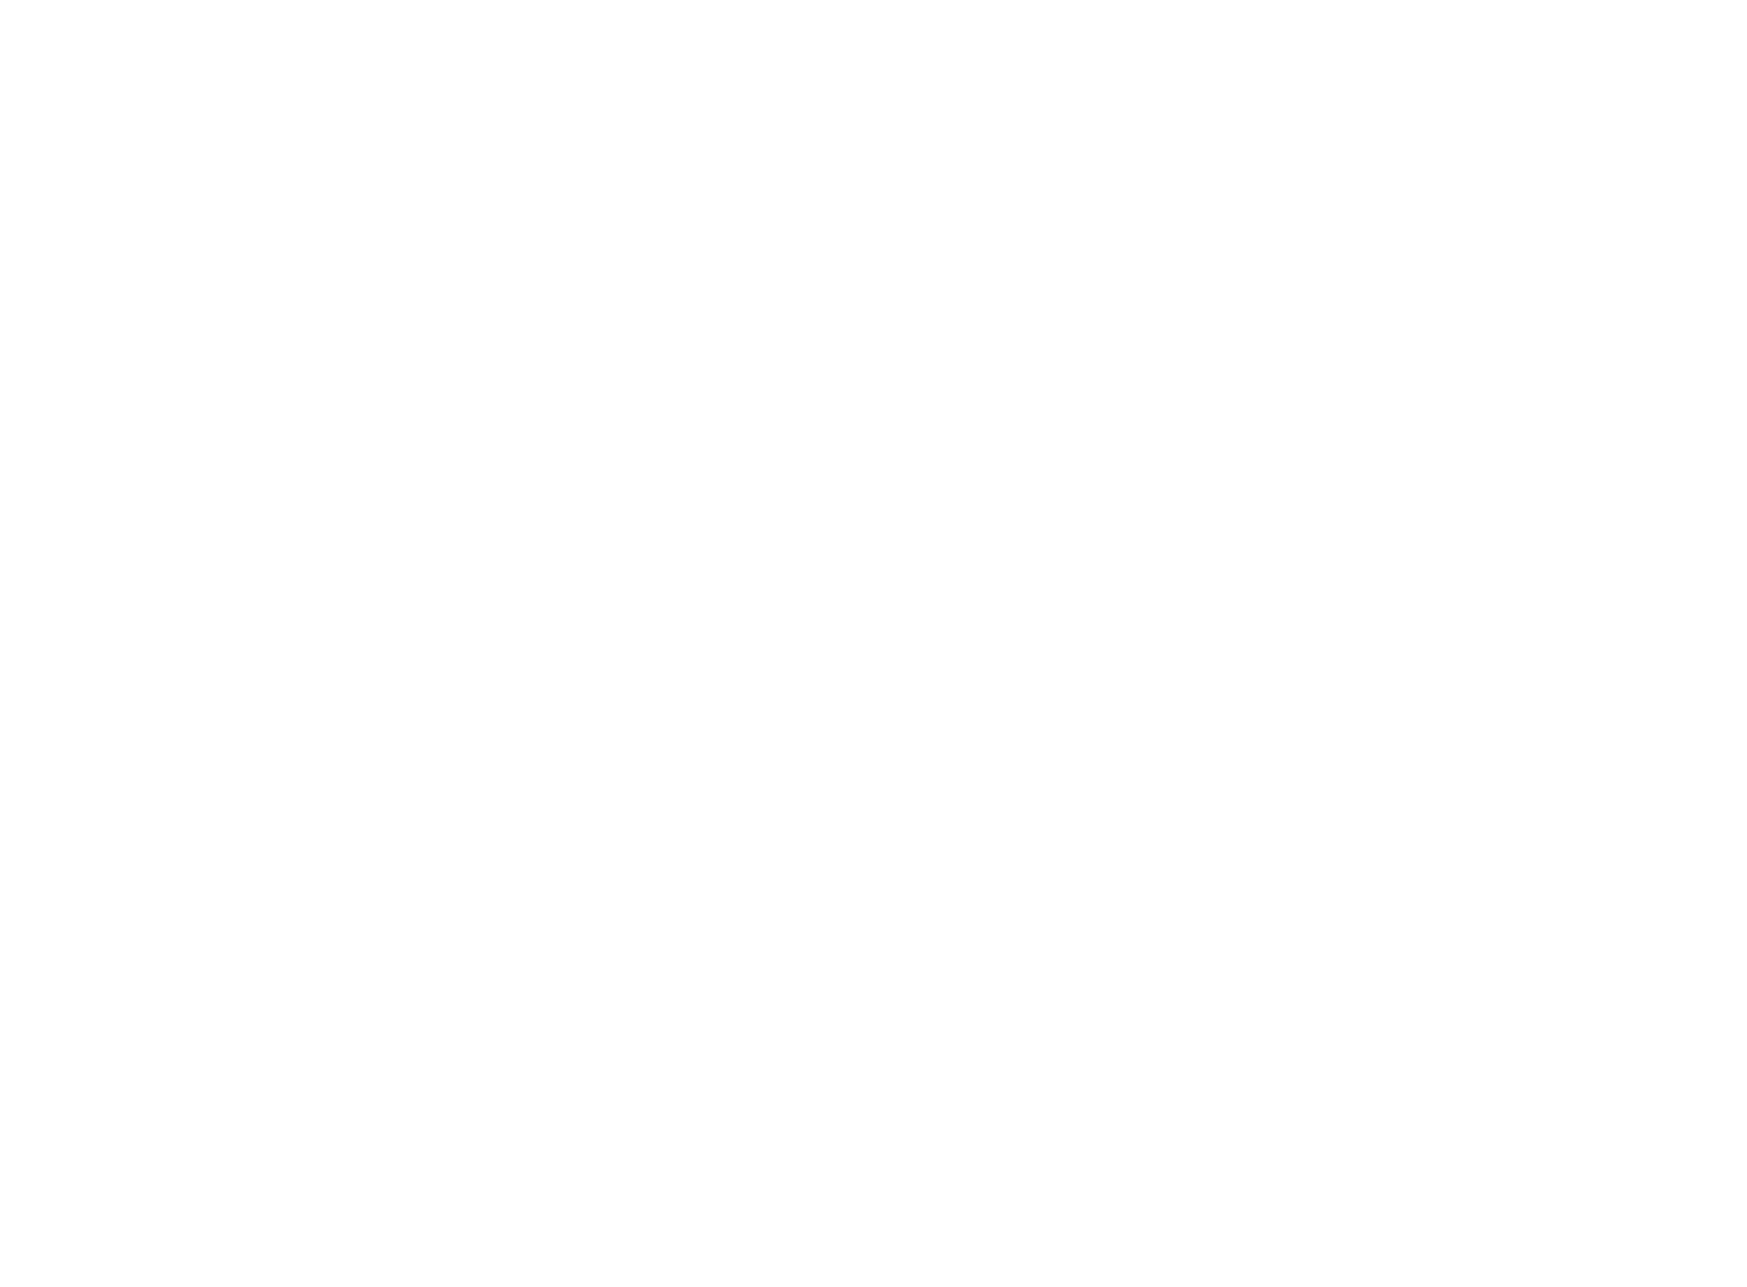 Glow PNG Black And White - 157489